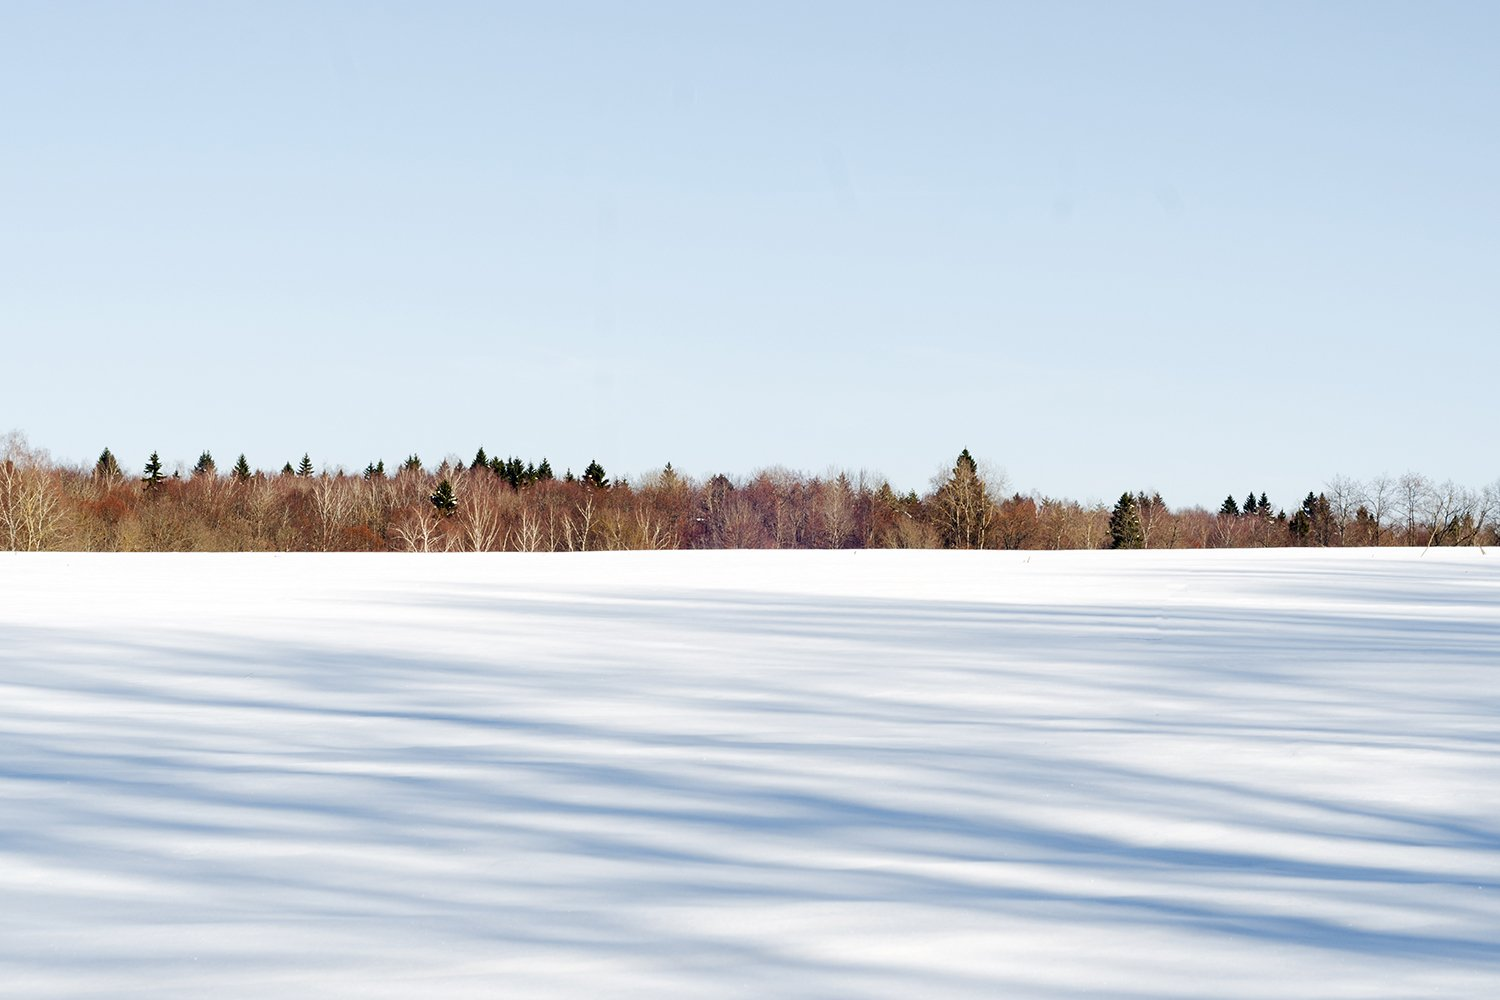 Winter landscape. Shadows on the white snow. example image 1